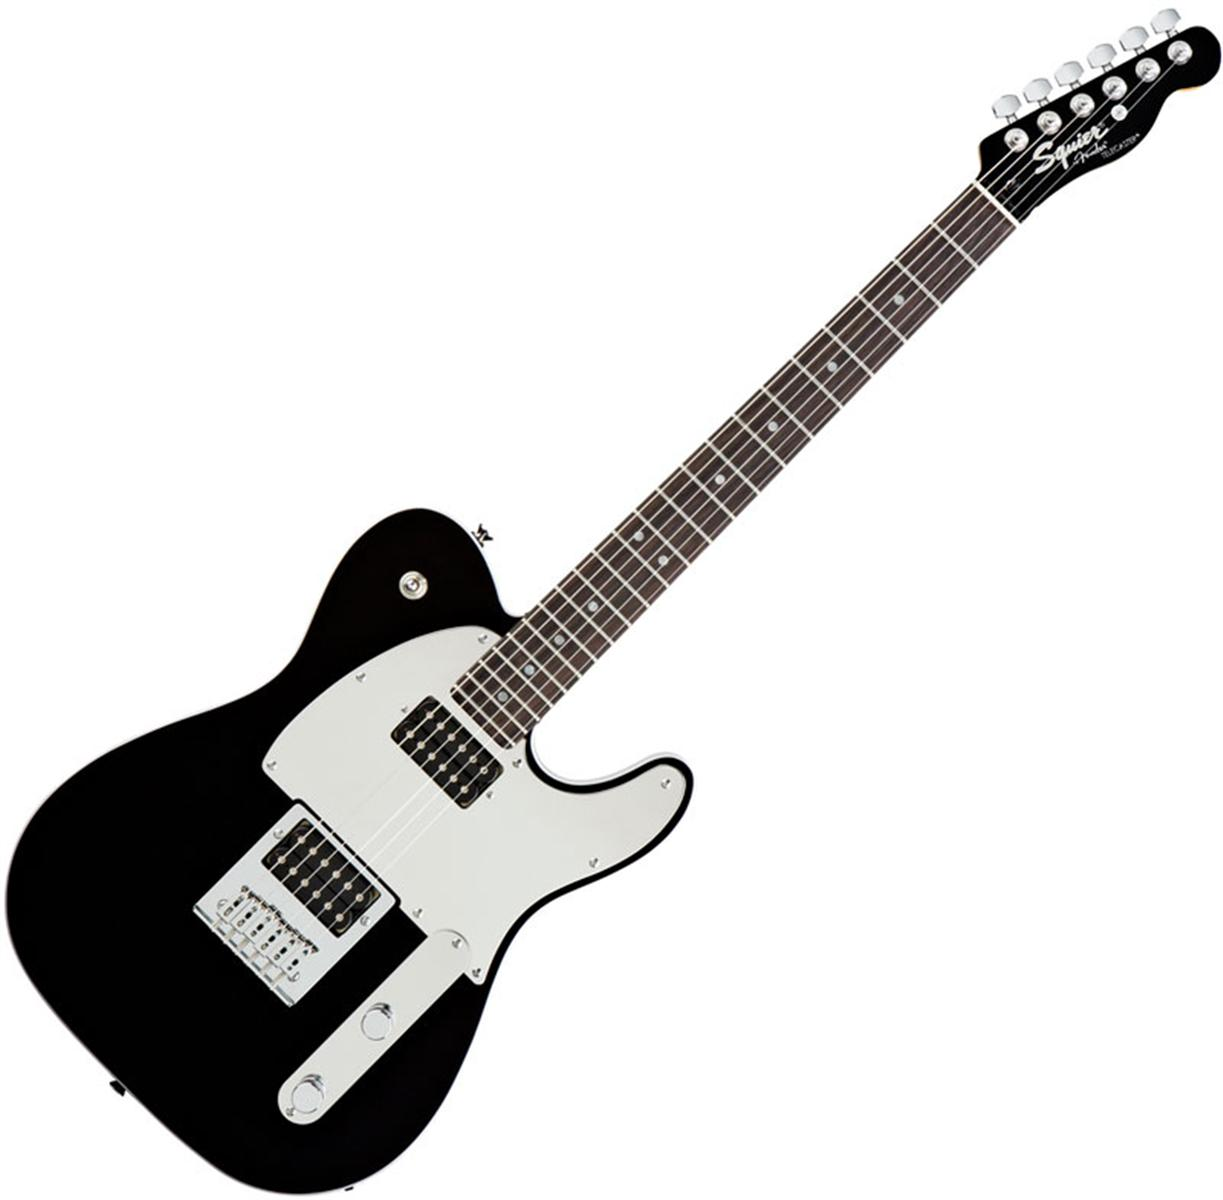 Rock and Roll Guitar Clipart.